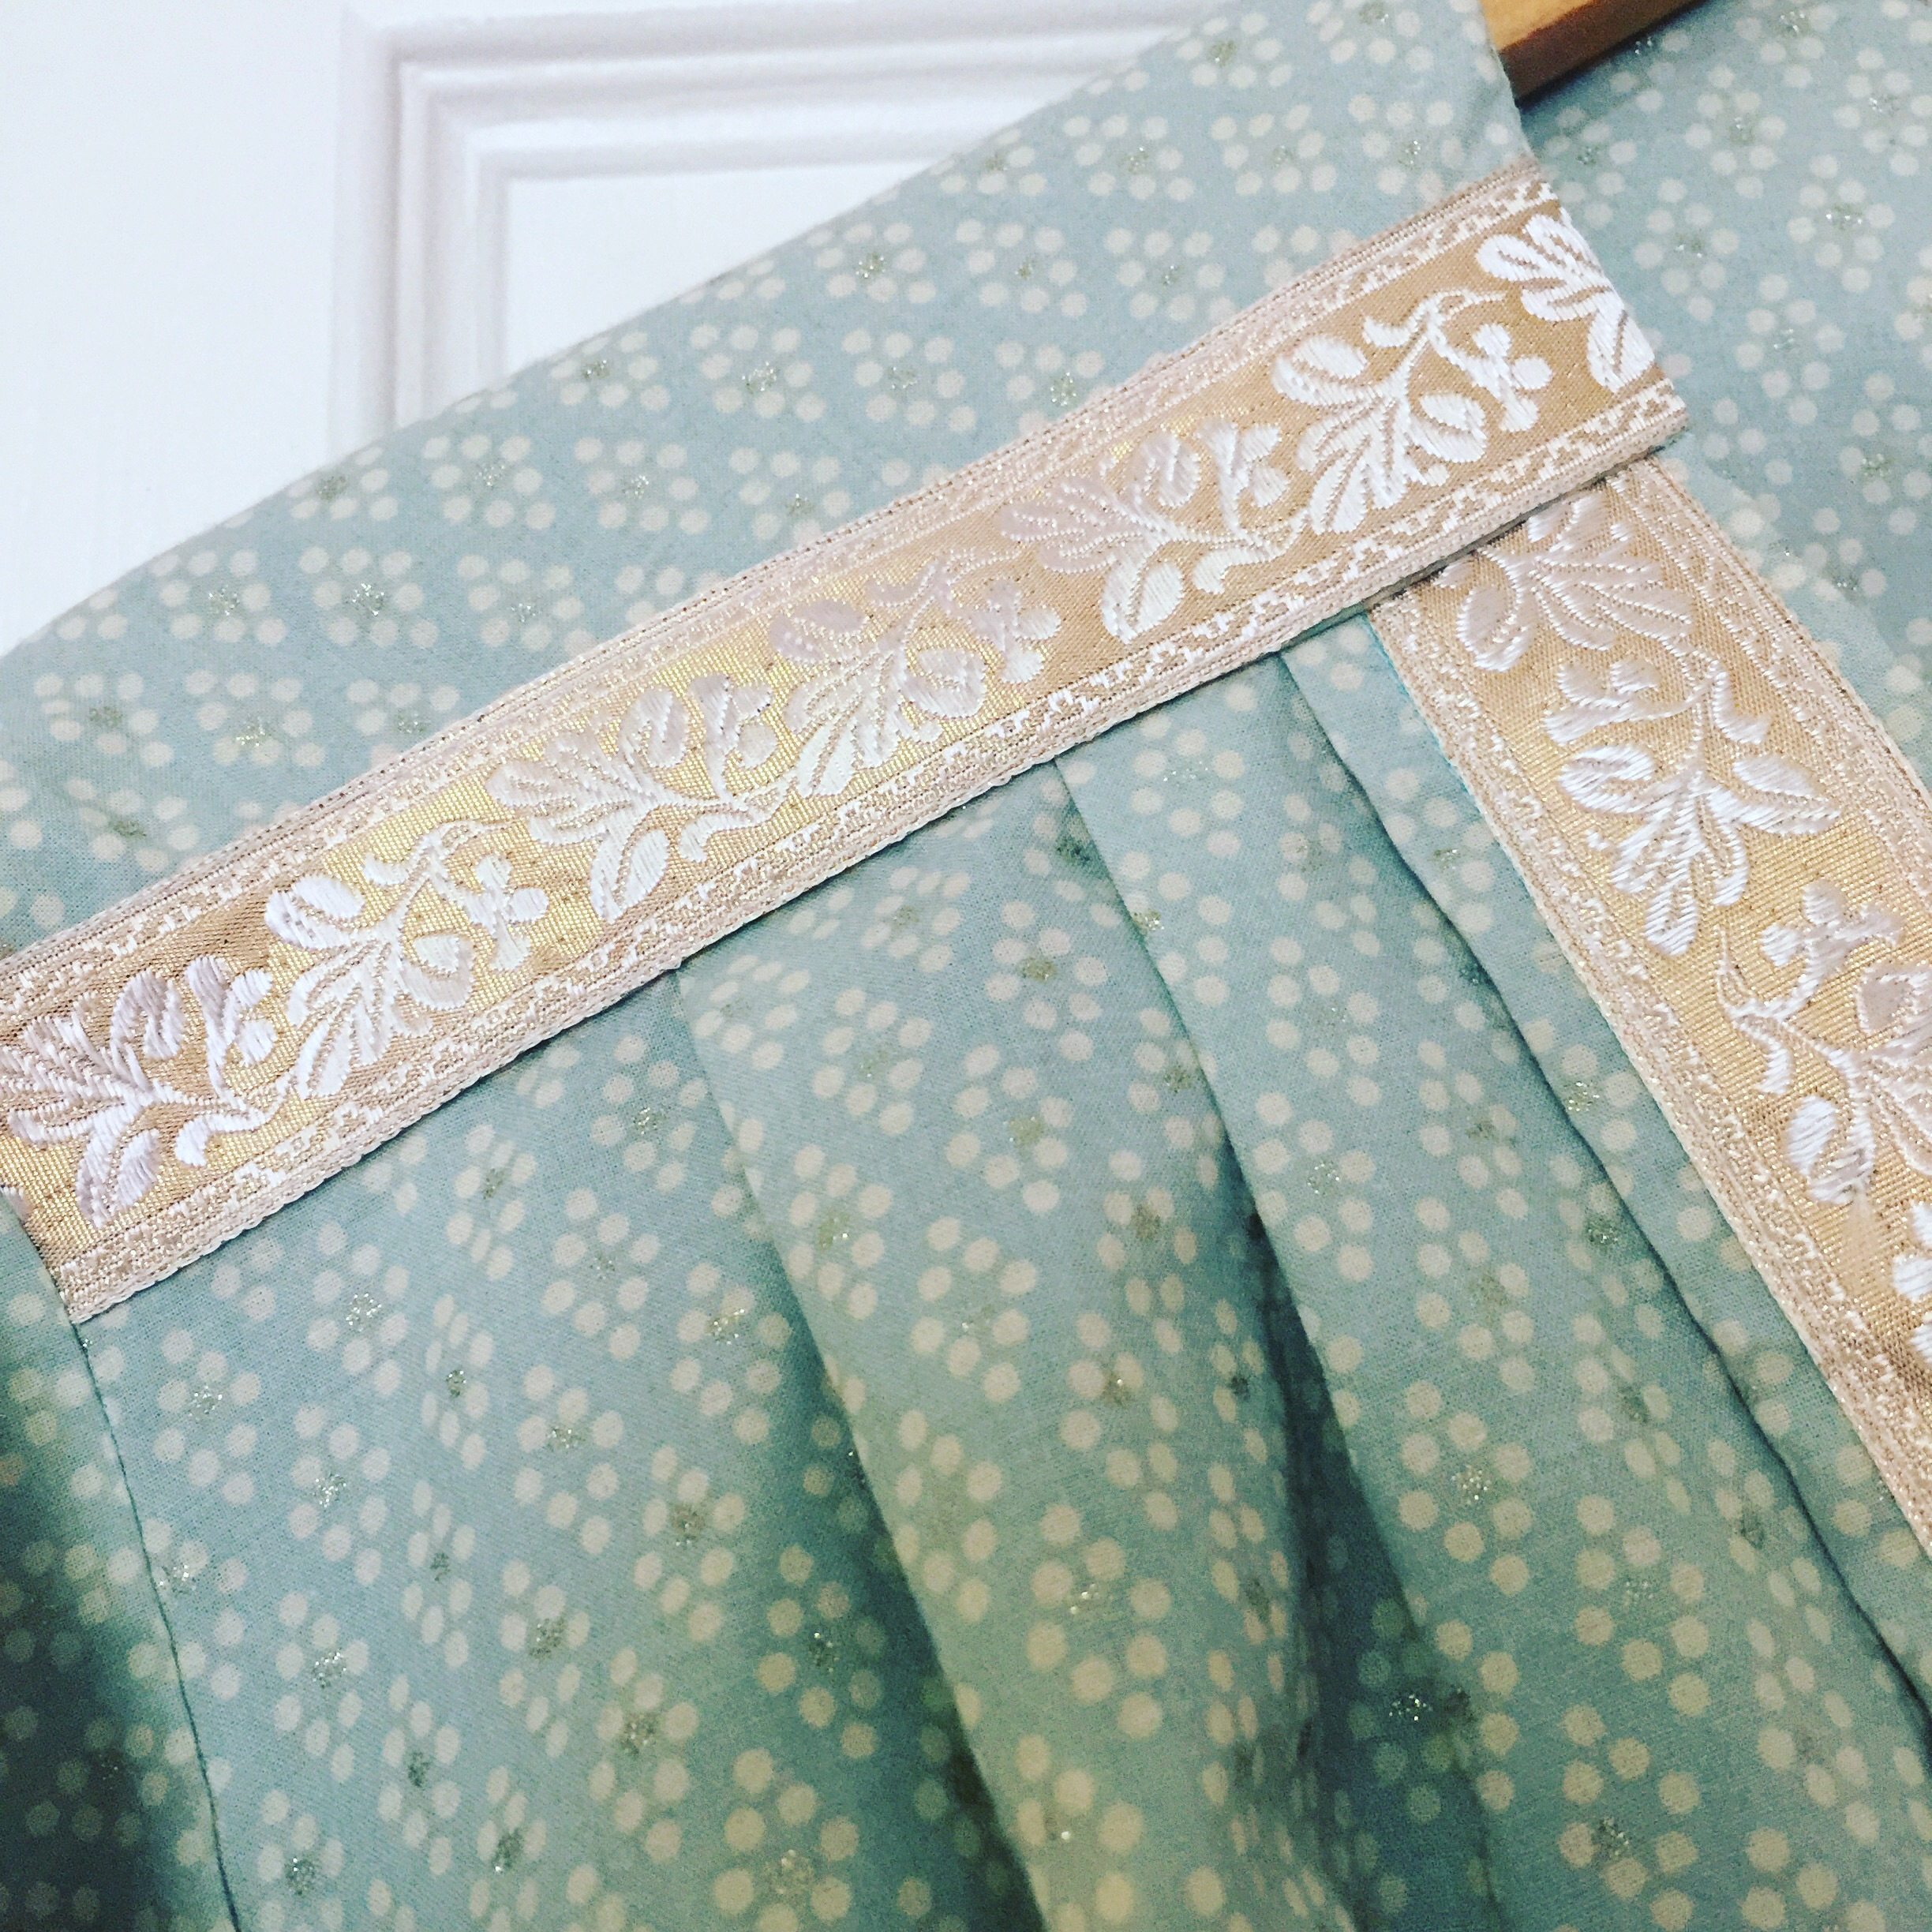 The Pastel Kimono, handmade from a mint green, cream and gold cotton fabric and a vintage pink and gold trim.